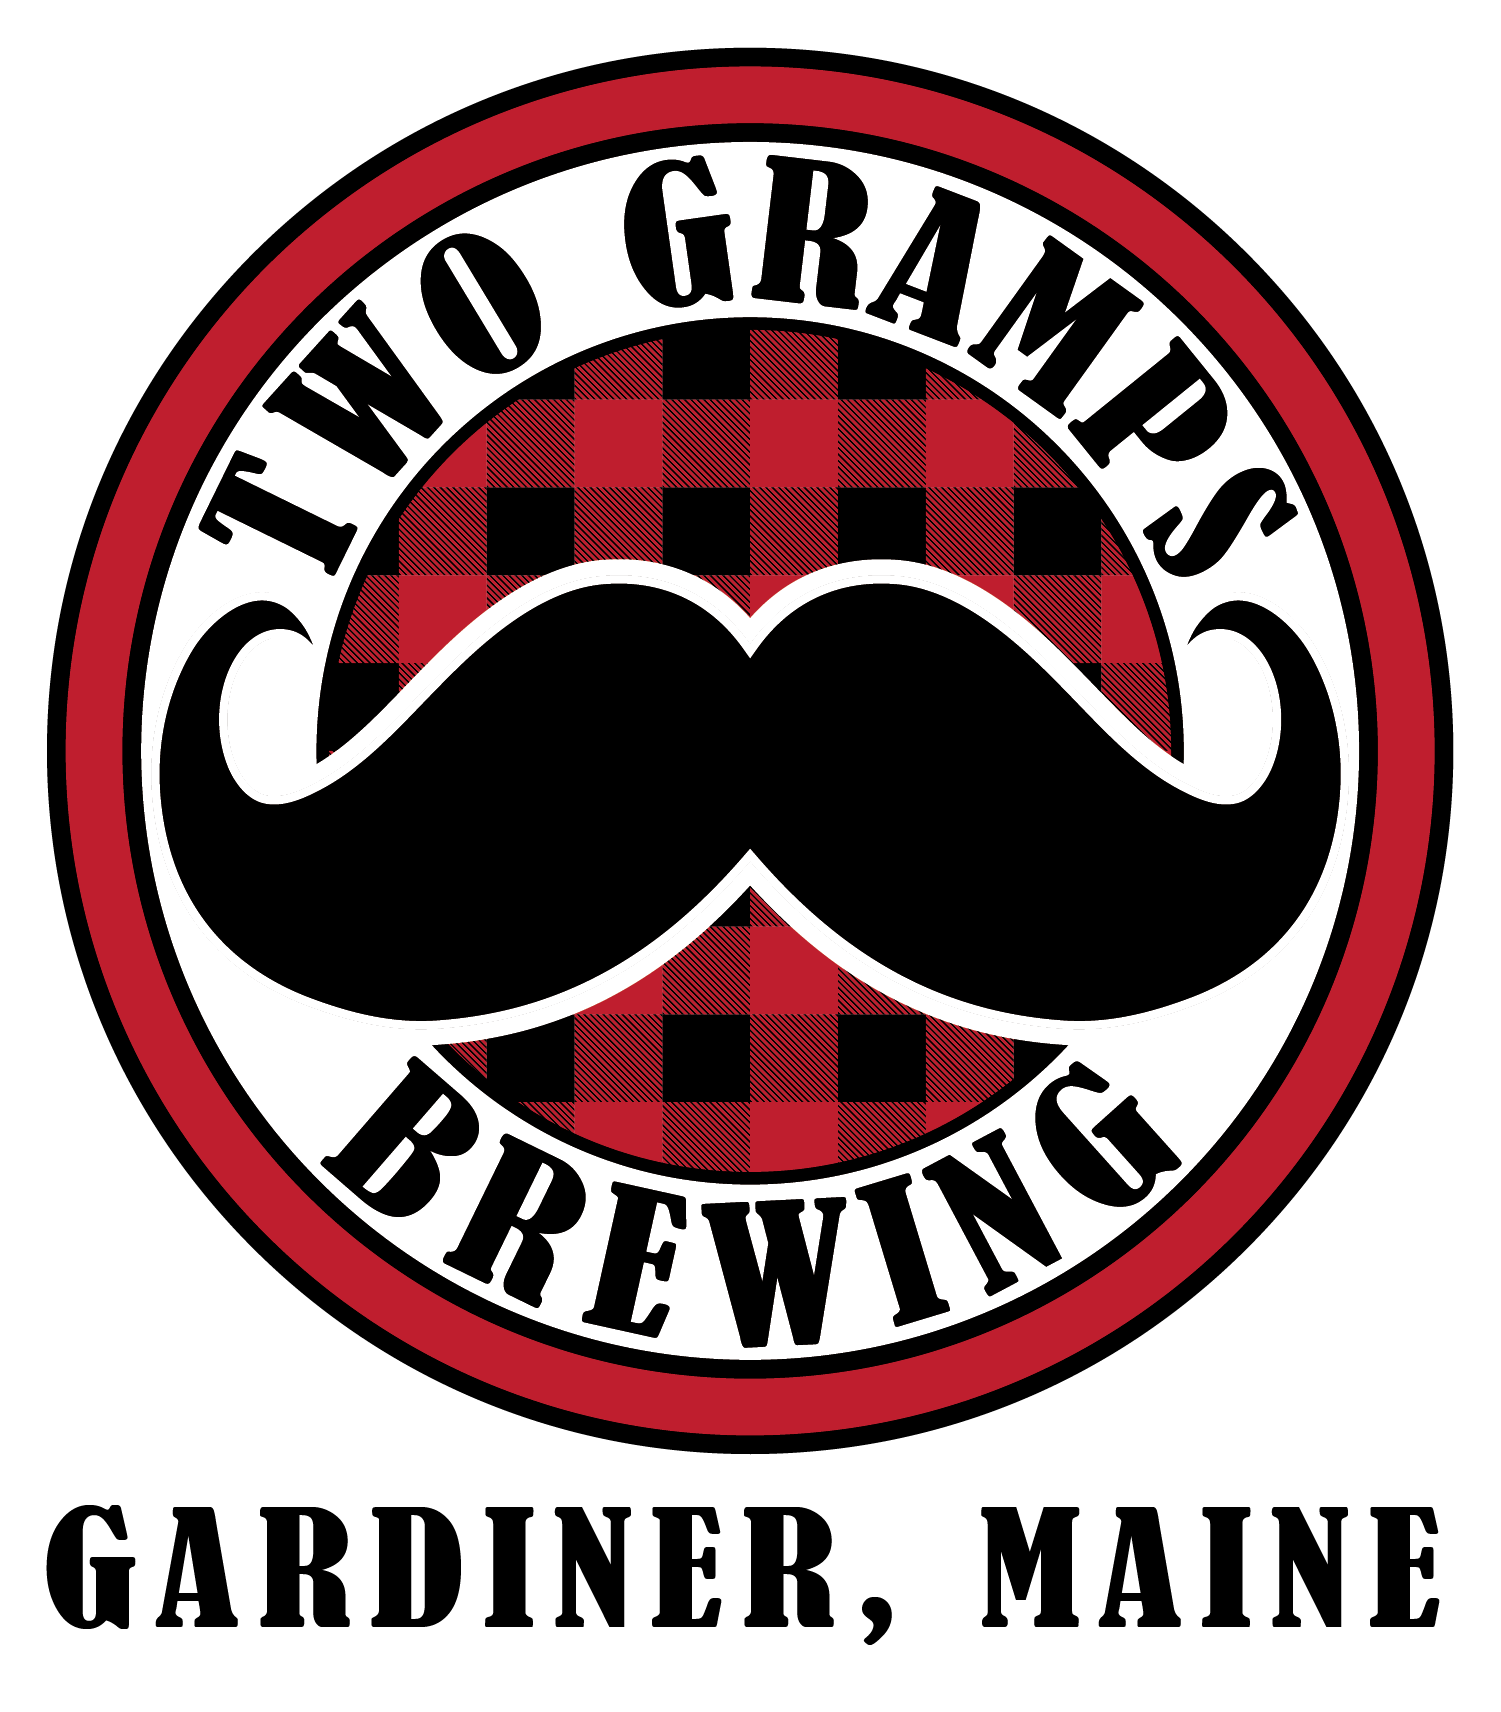 Two Gramps Brewing-01.png